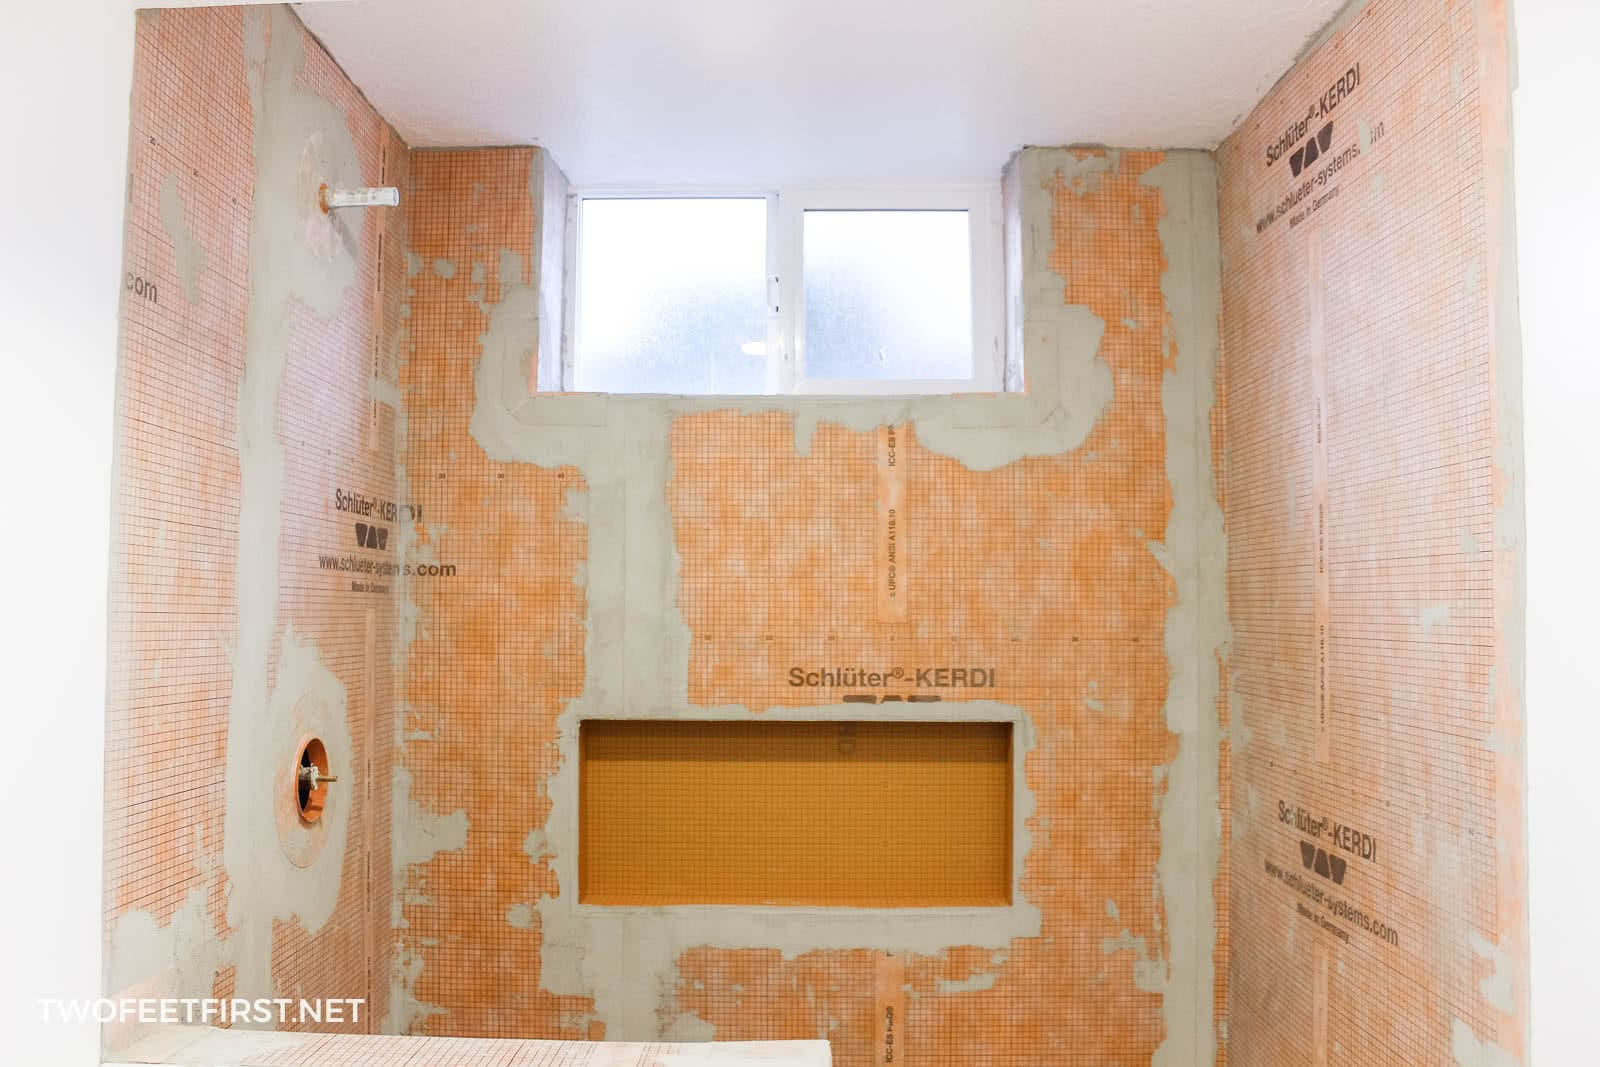 Schluter Kerdi Shower Pan Installation.How To Prep A Shower For Tile With Schluter Kerdi